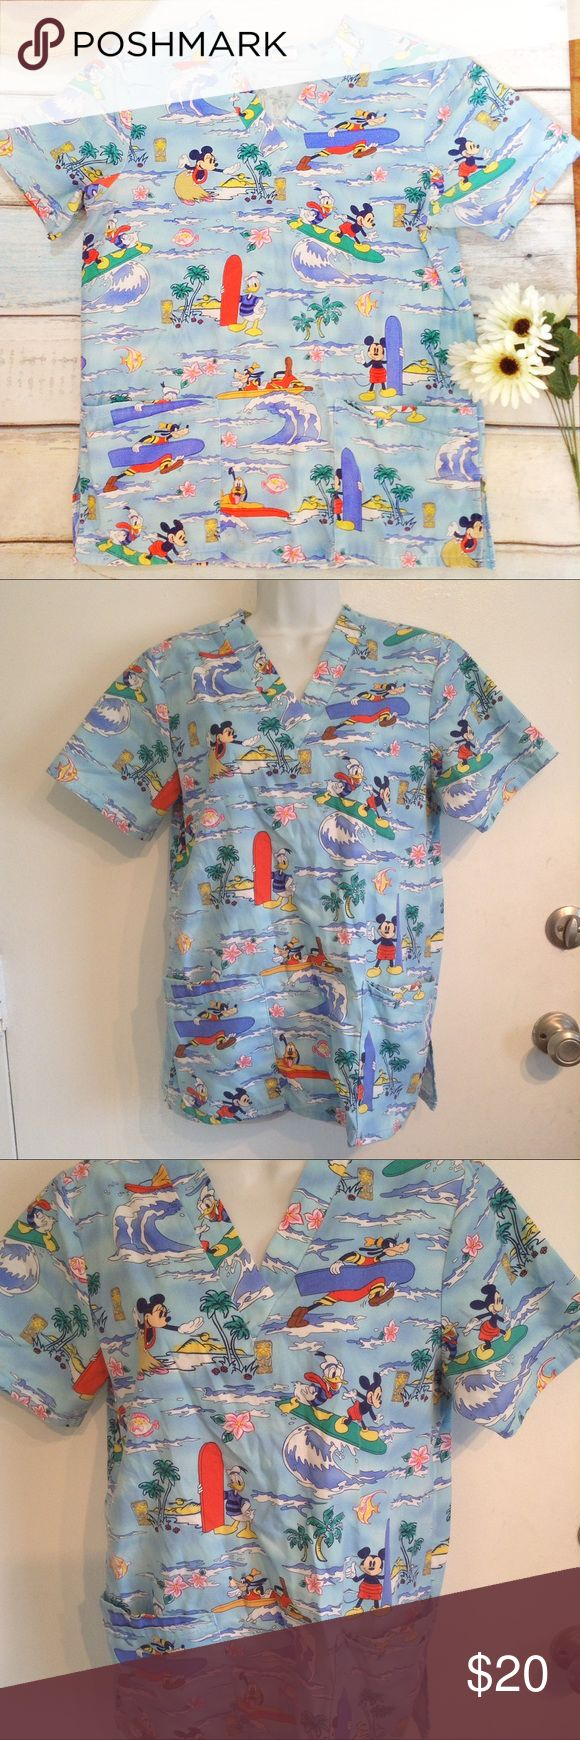 "DISNEY Tropical Aloha Hawaiian Character Scrub Top Disney healthcare uniform scrub top with  neck and pockets. Fun Mickey Mouse, Donald Duck, Goofy, Pluto, and Minnie Mouse characters surfing in a fun tropical Hawaiian background with palm trees, hibiscus flowers, hula dancers, tiki totems, and fish. Size small. Measures 20"" flat from armpit to armpit, and 27"" from shoulder to hem. No modeling. Smoke free home. I do discount bundles. Disney Tops"